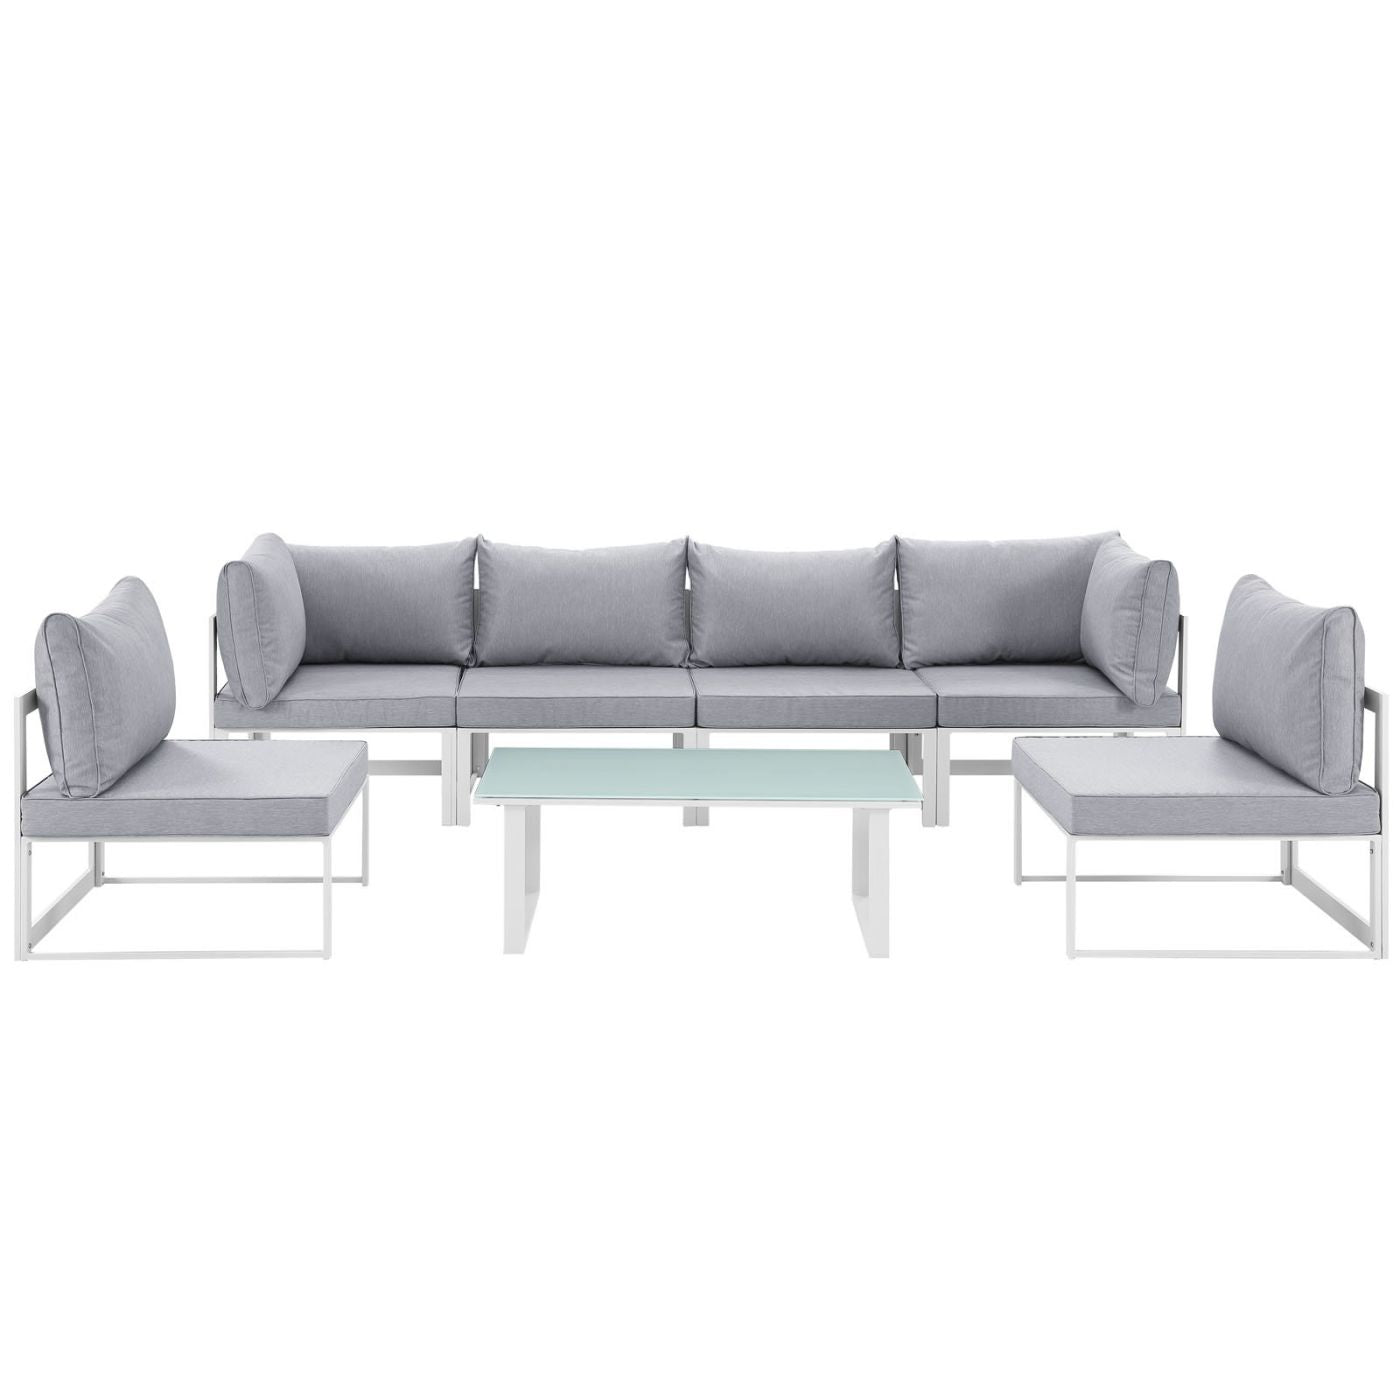 Modway Outdoor Patio Sets on sale. EEI-1729-WHI-GRY-SET ...